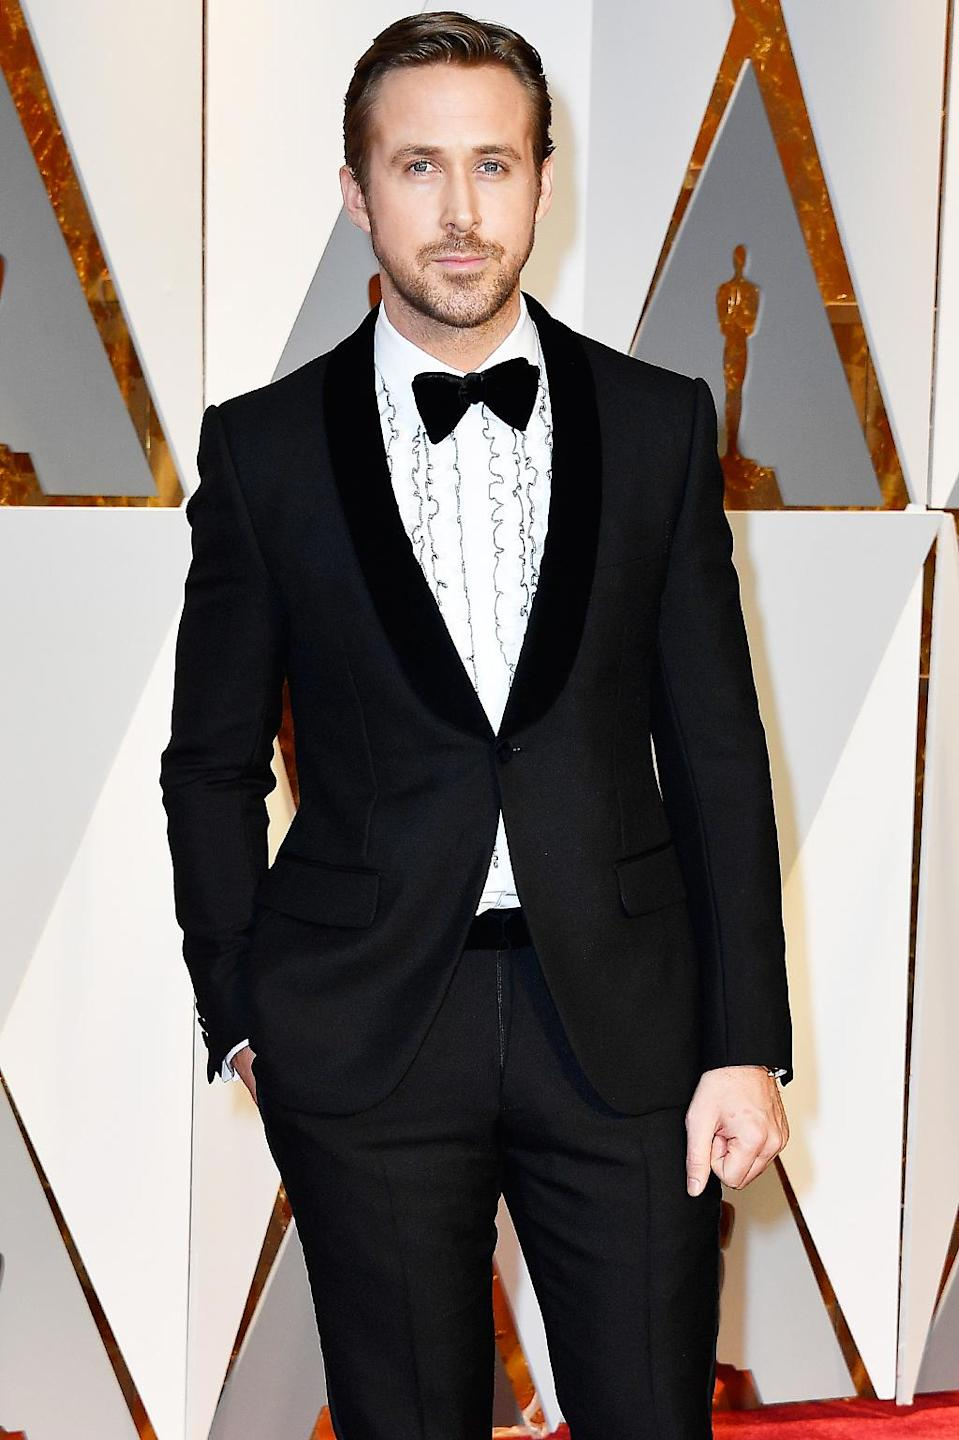 """<p>Ryan Gosling attends the 89th Annual Academy Awards on Feb. 26, 2017. (Photo by Frazer Harrison/Getty Images)<br><br><a href=""""https://www.yahoo.com/style/oscars-2017-vote-for-the-best-and-worst-dressed-225105125.html"""" data-ylk=""""slk:Go here to vote for best and worst dressed.;outcm:mb_qualified_link;_E:mb_qualified_link;ct:story;"""" class=""""link rapid-noclick-resp yahoo-link"""">Go here to vote for best and worst dressed.</a> </p>"""